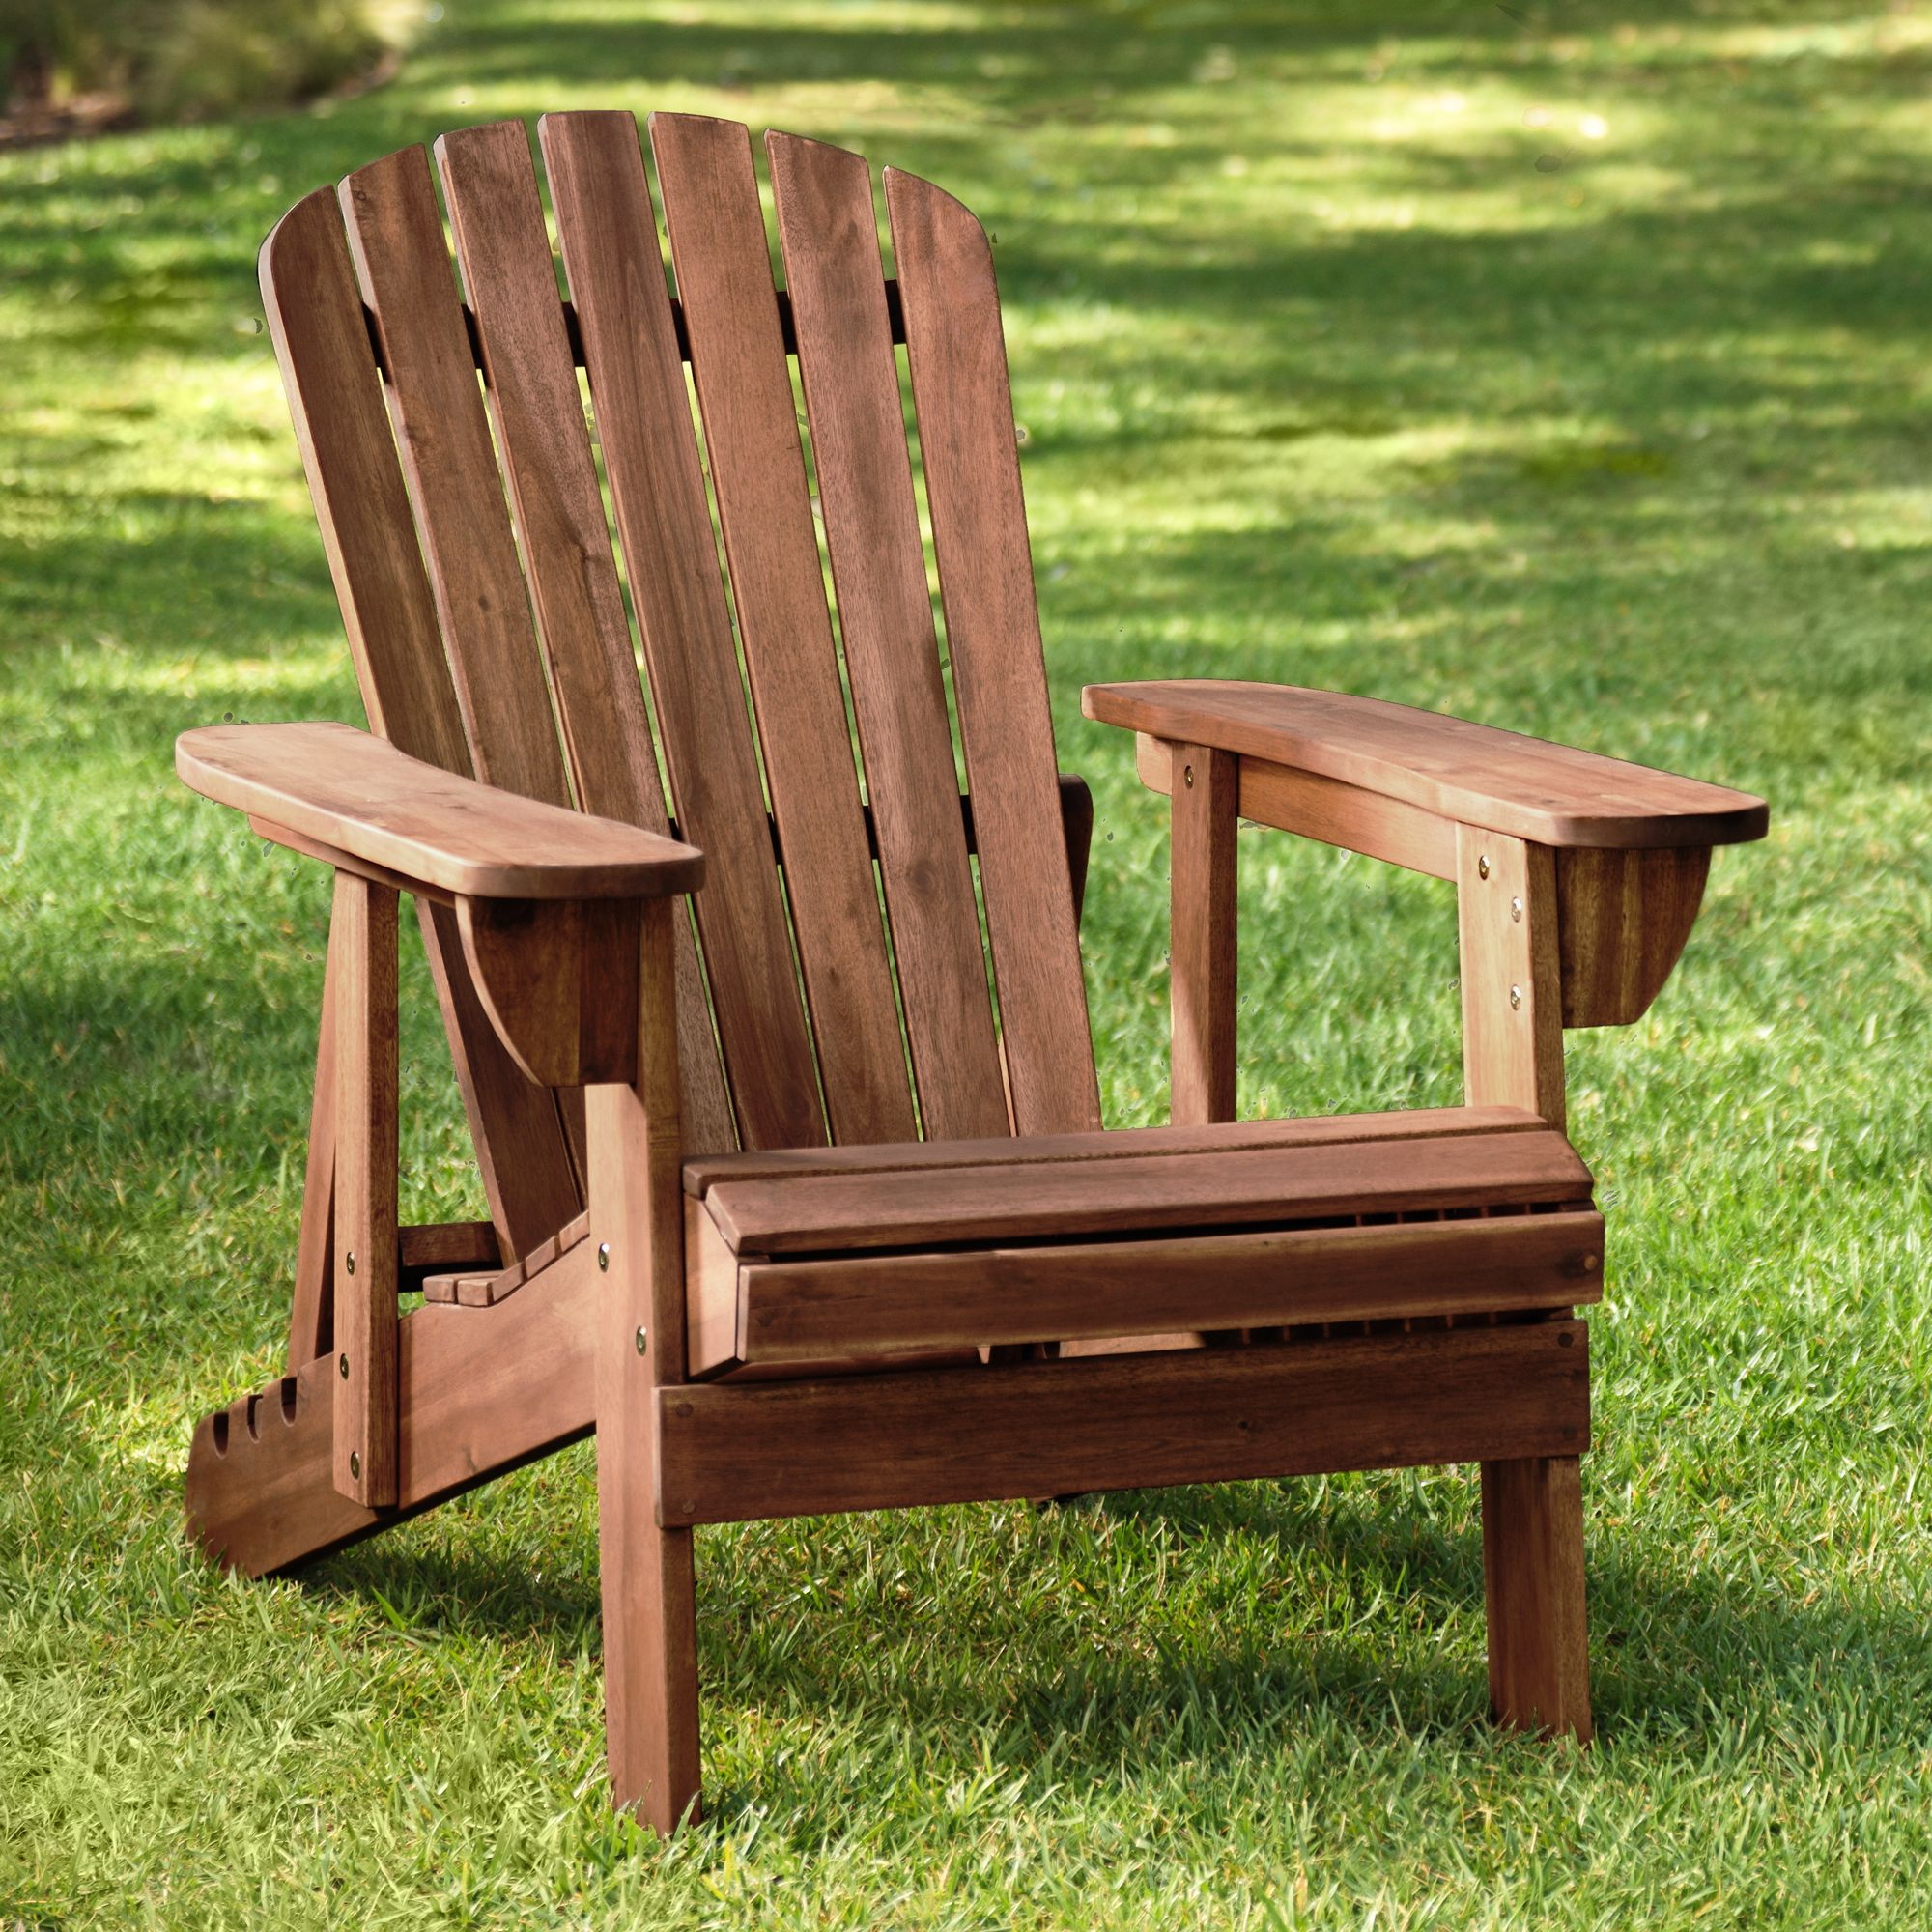 Teal Island Designs Fletcher Adjustable Back Dark Natural Adirondack Chair